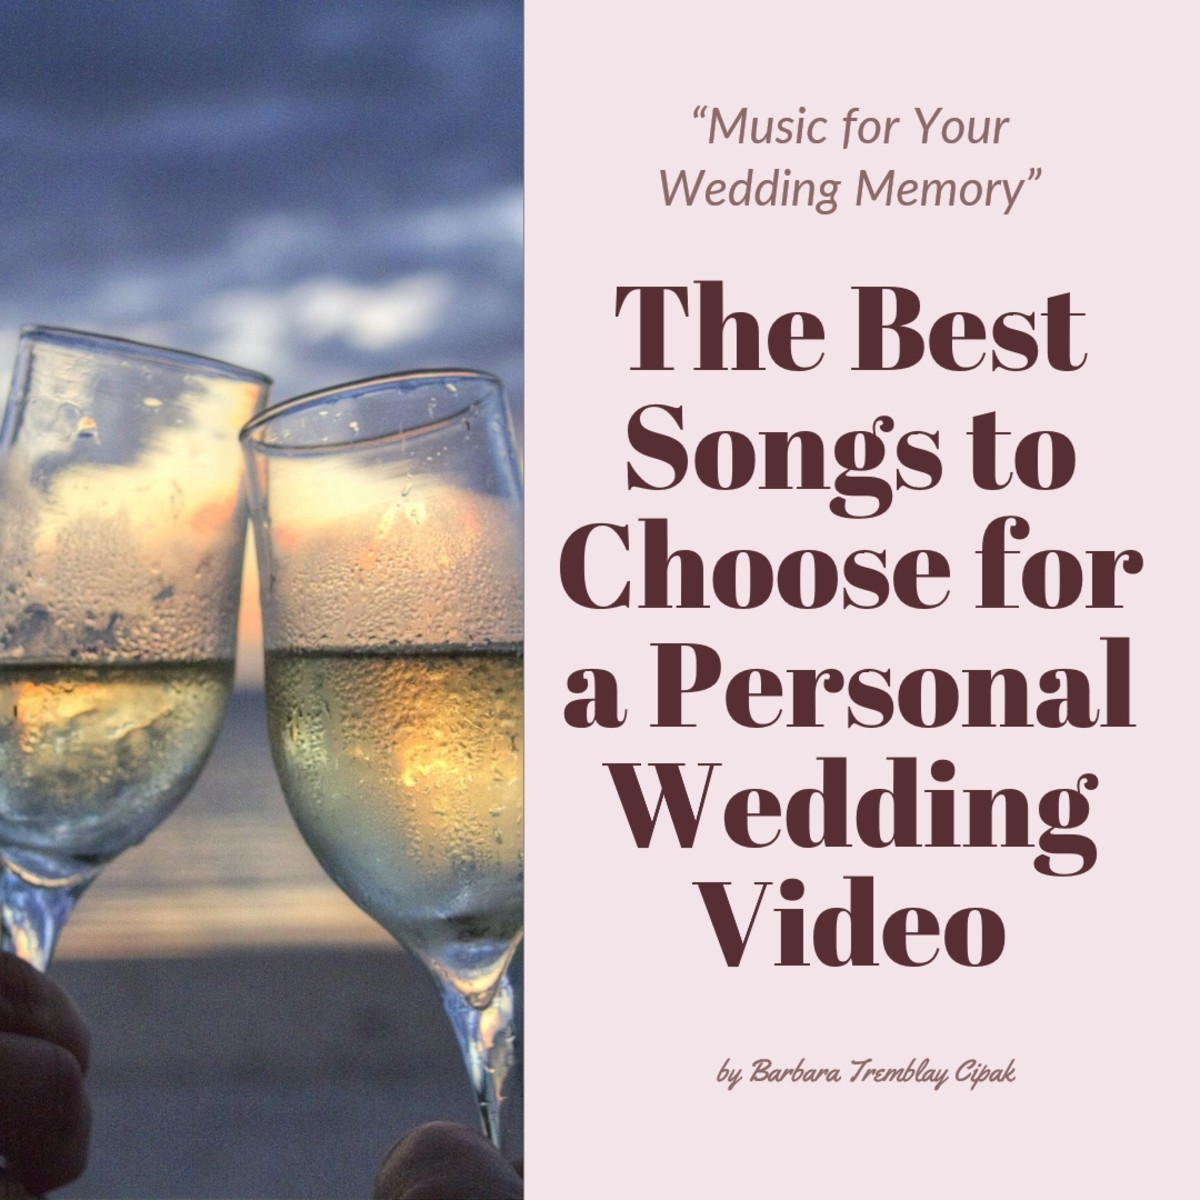 Best Songs for a Wedding Video